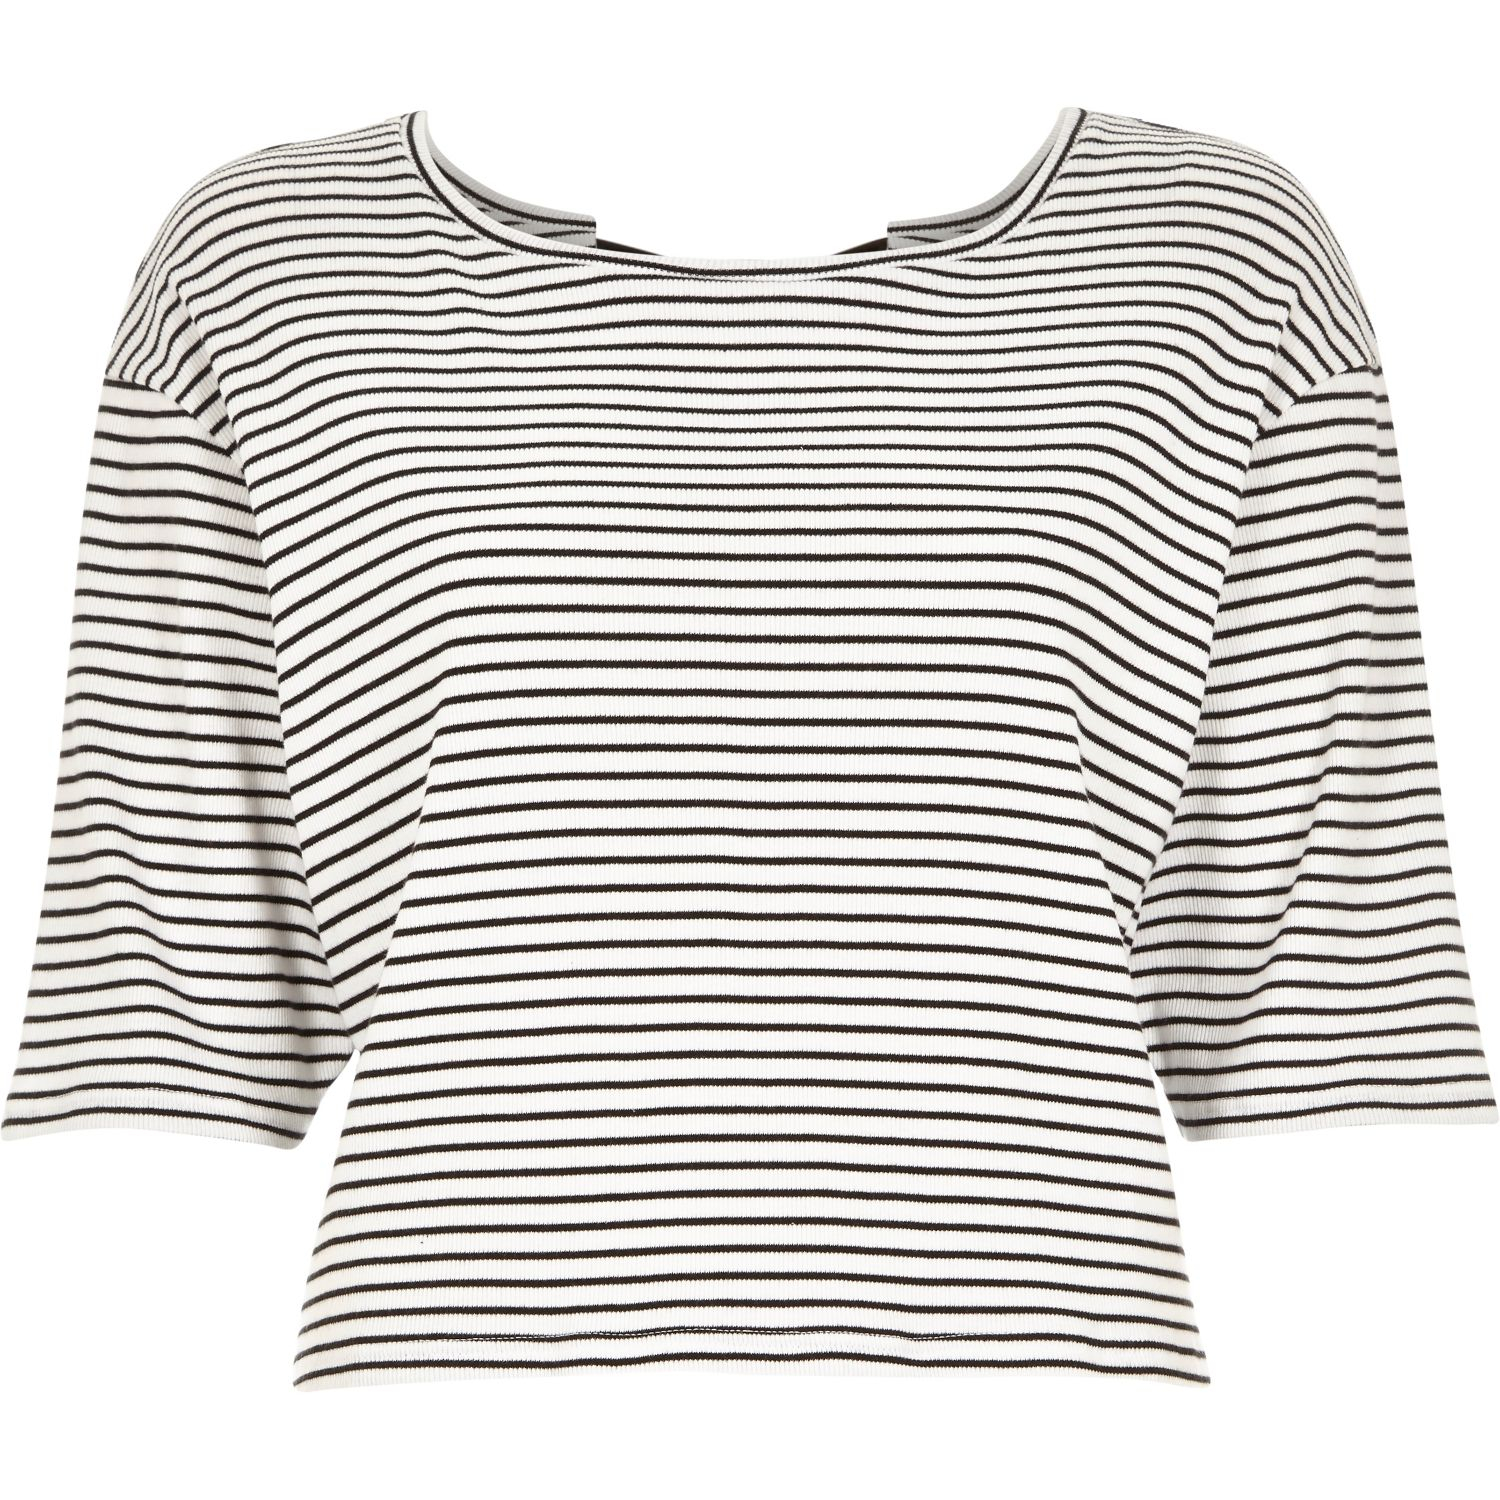 98bf1aed9cebfd Lyst - River Island Navy Stripe Bow Back T-shirt in Blue